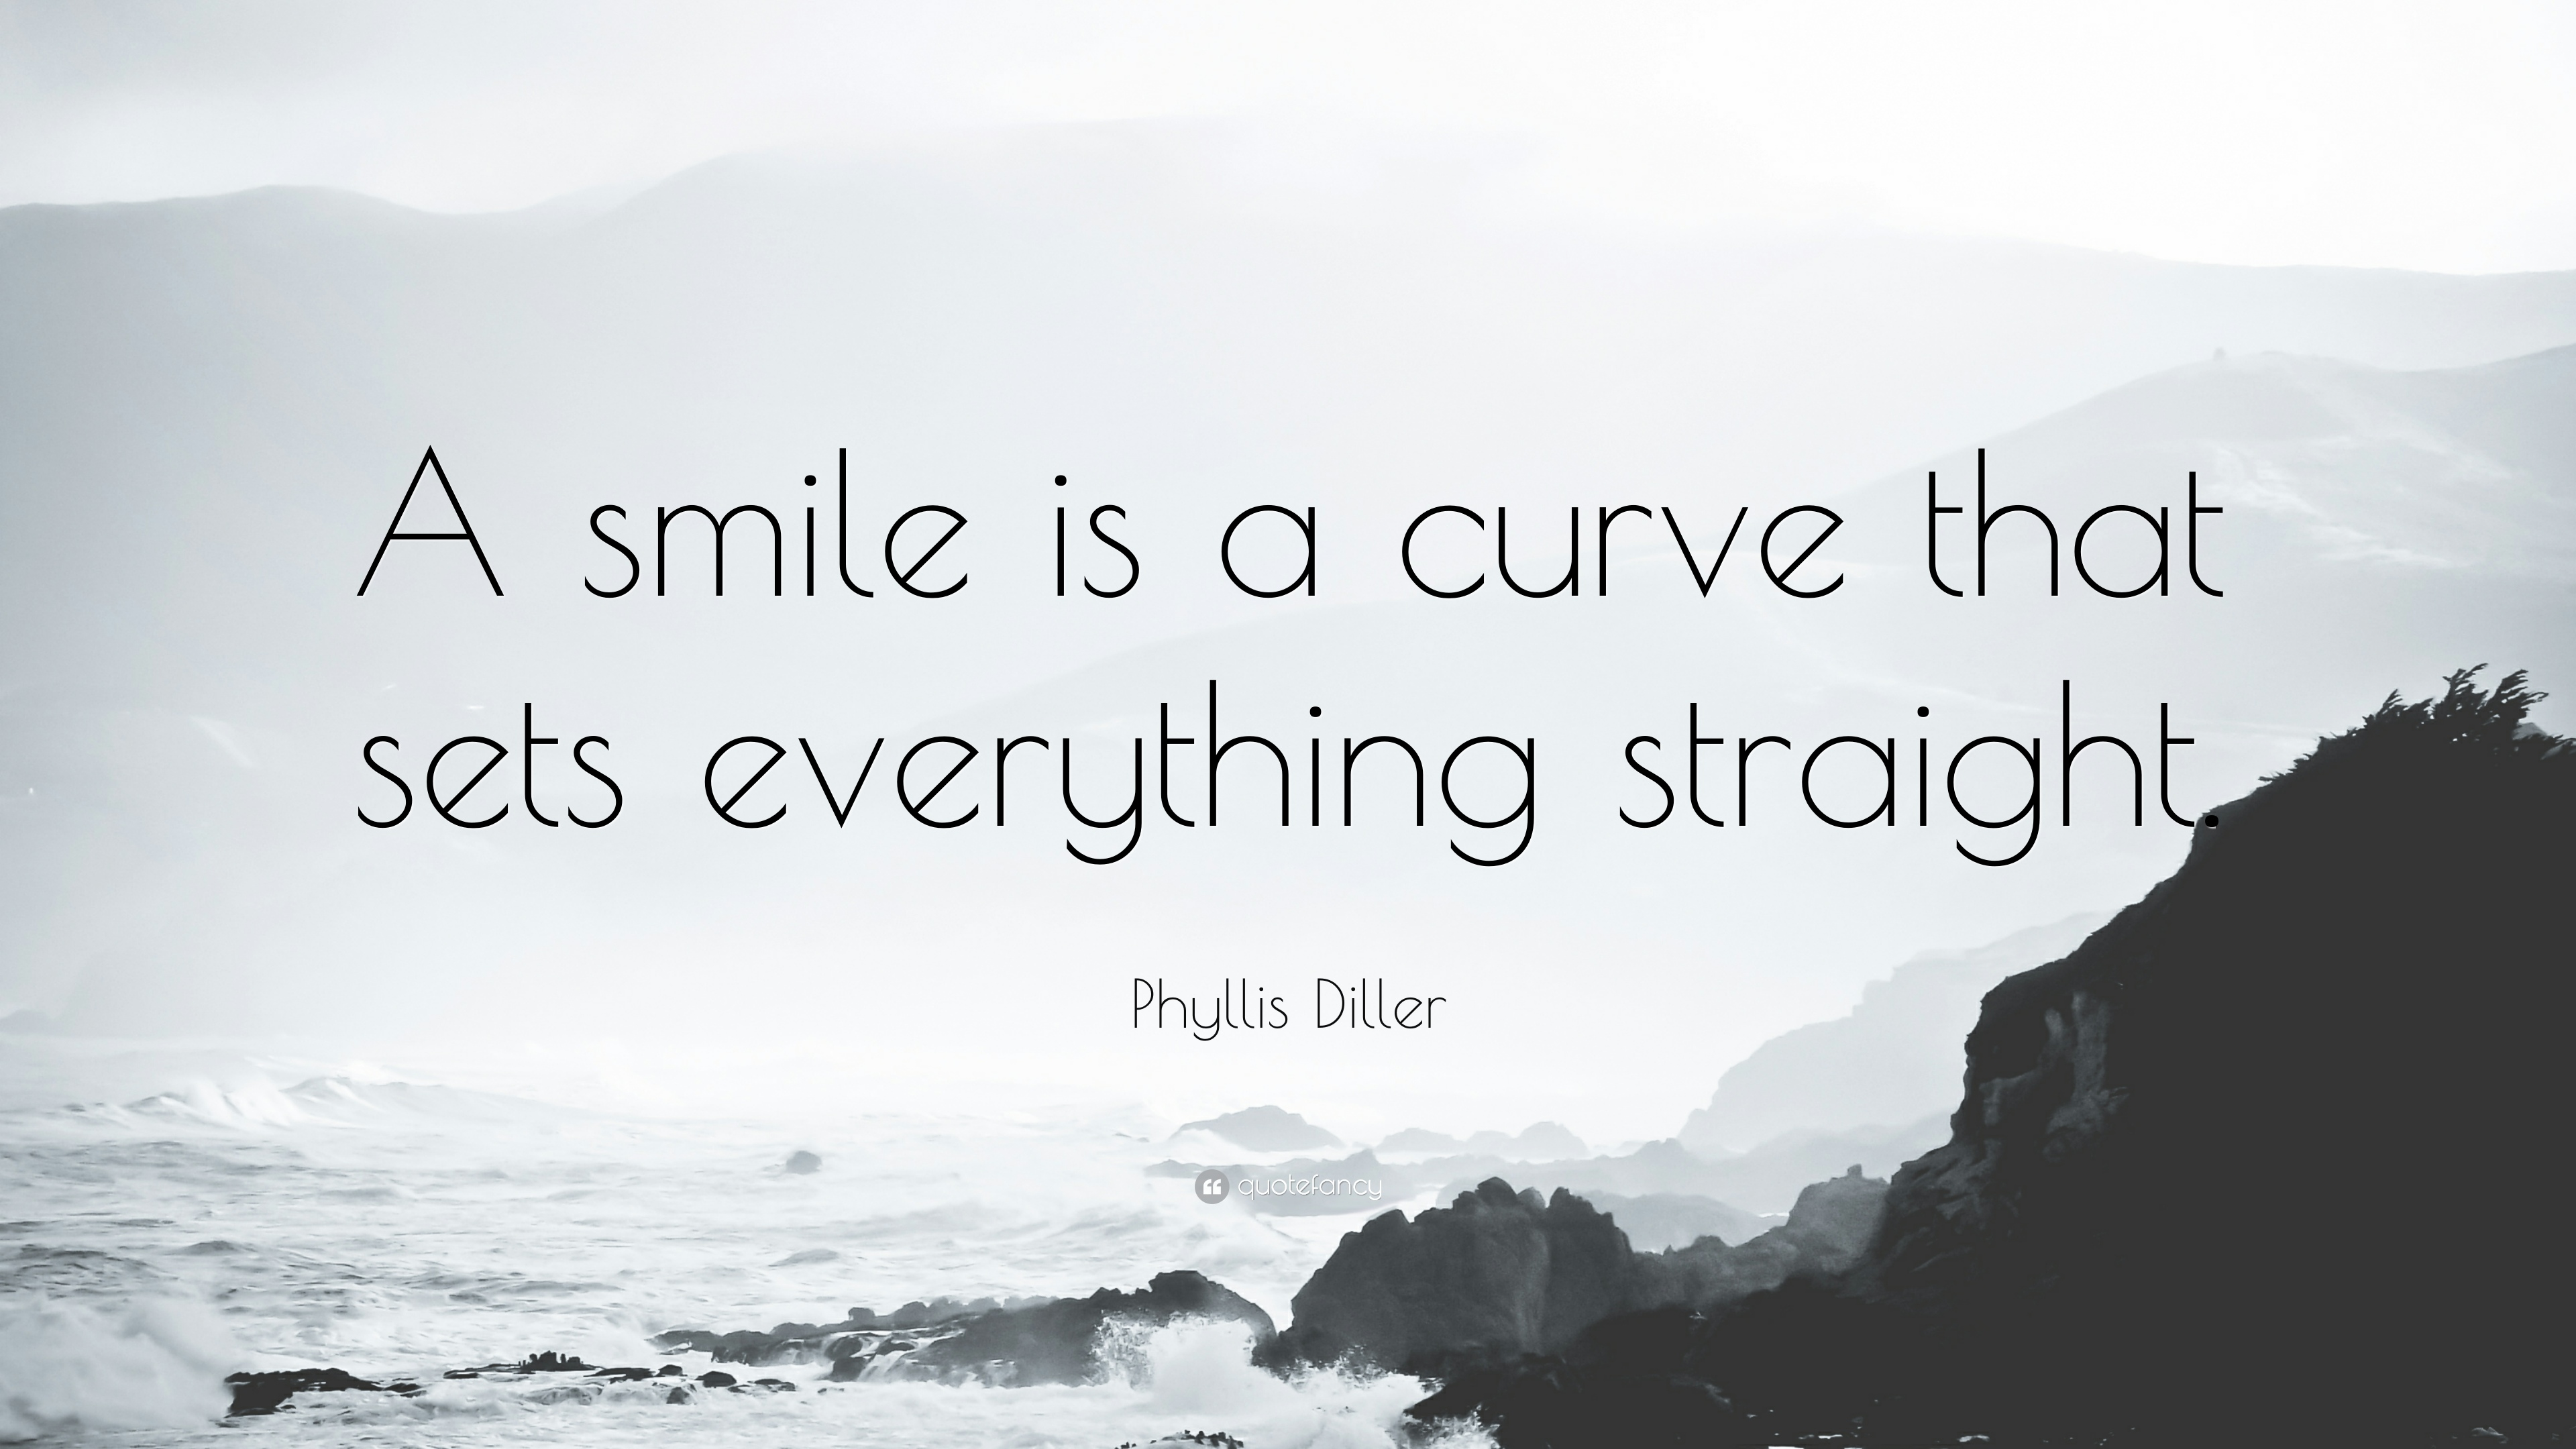 Quotes About Smiles Smile Quotes 40 Wallpapers  Quotefancy